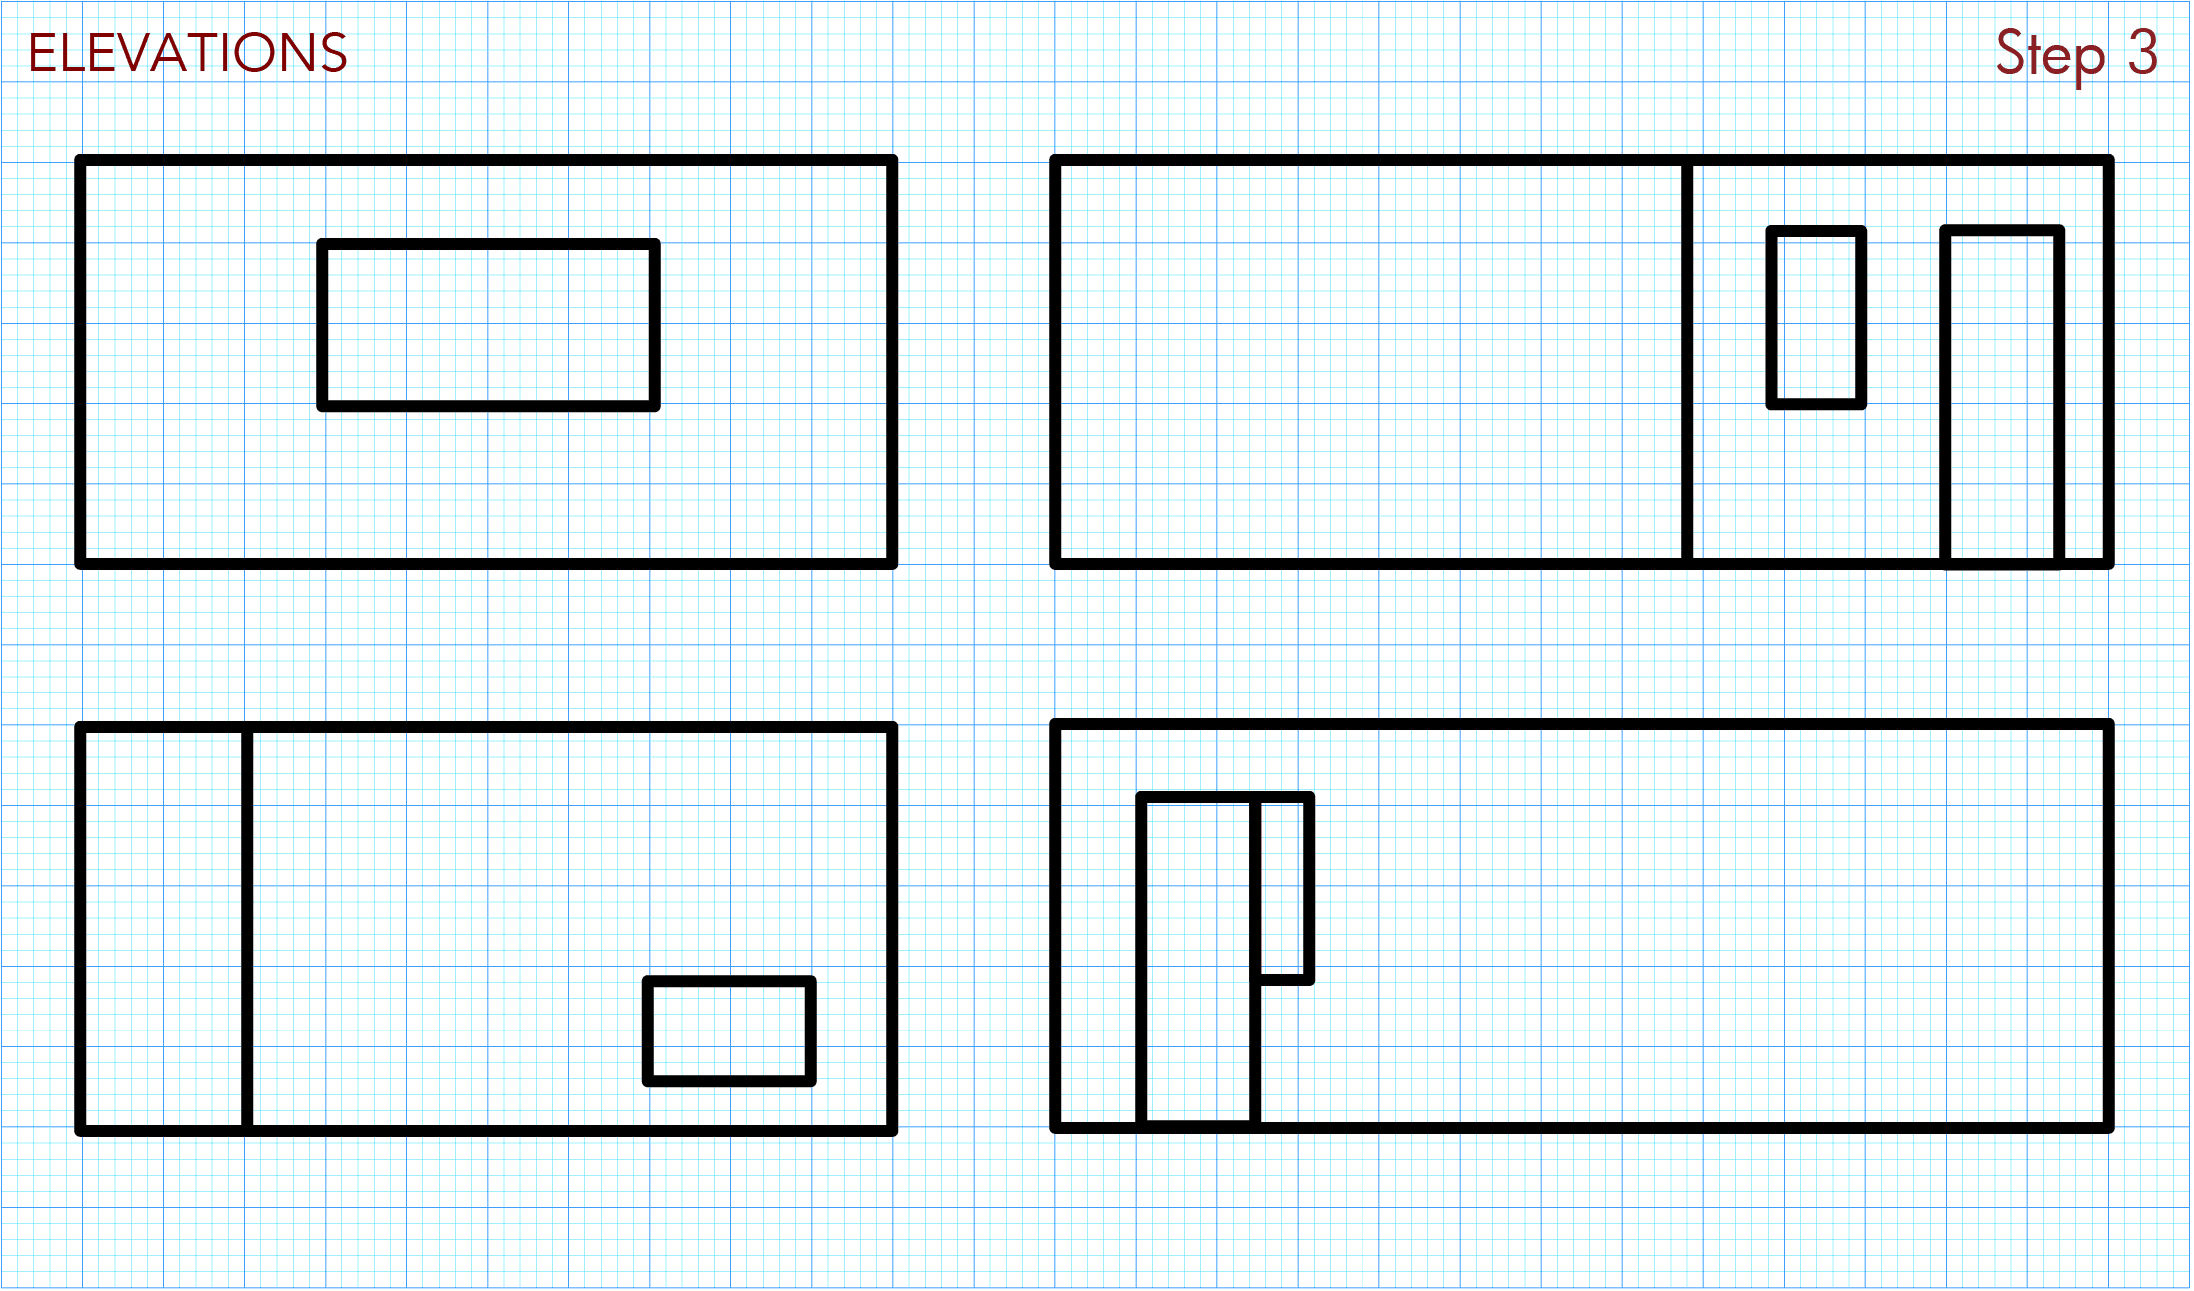 Draw rough room elevations